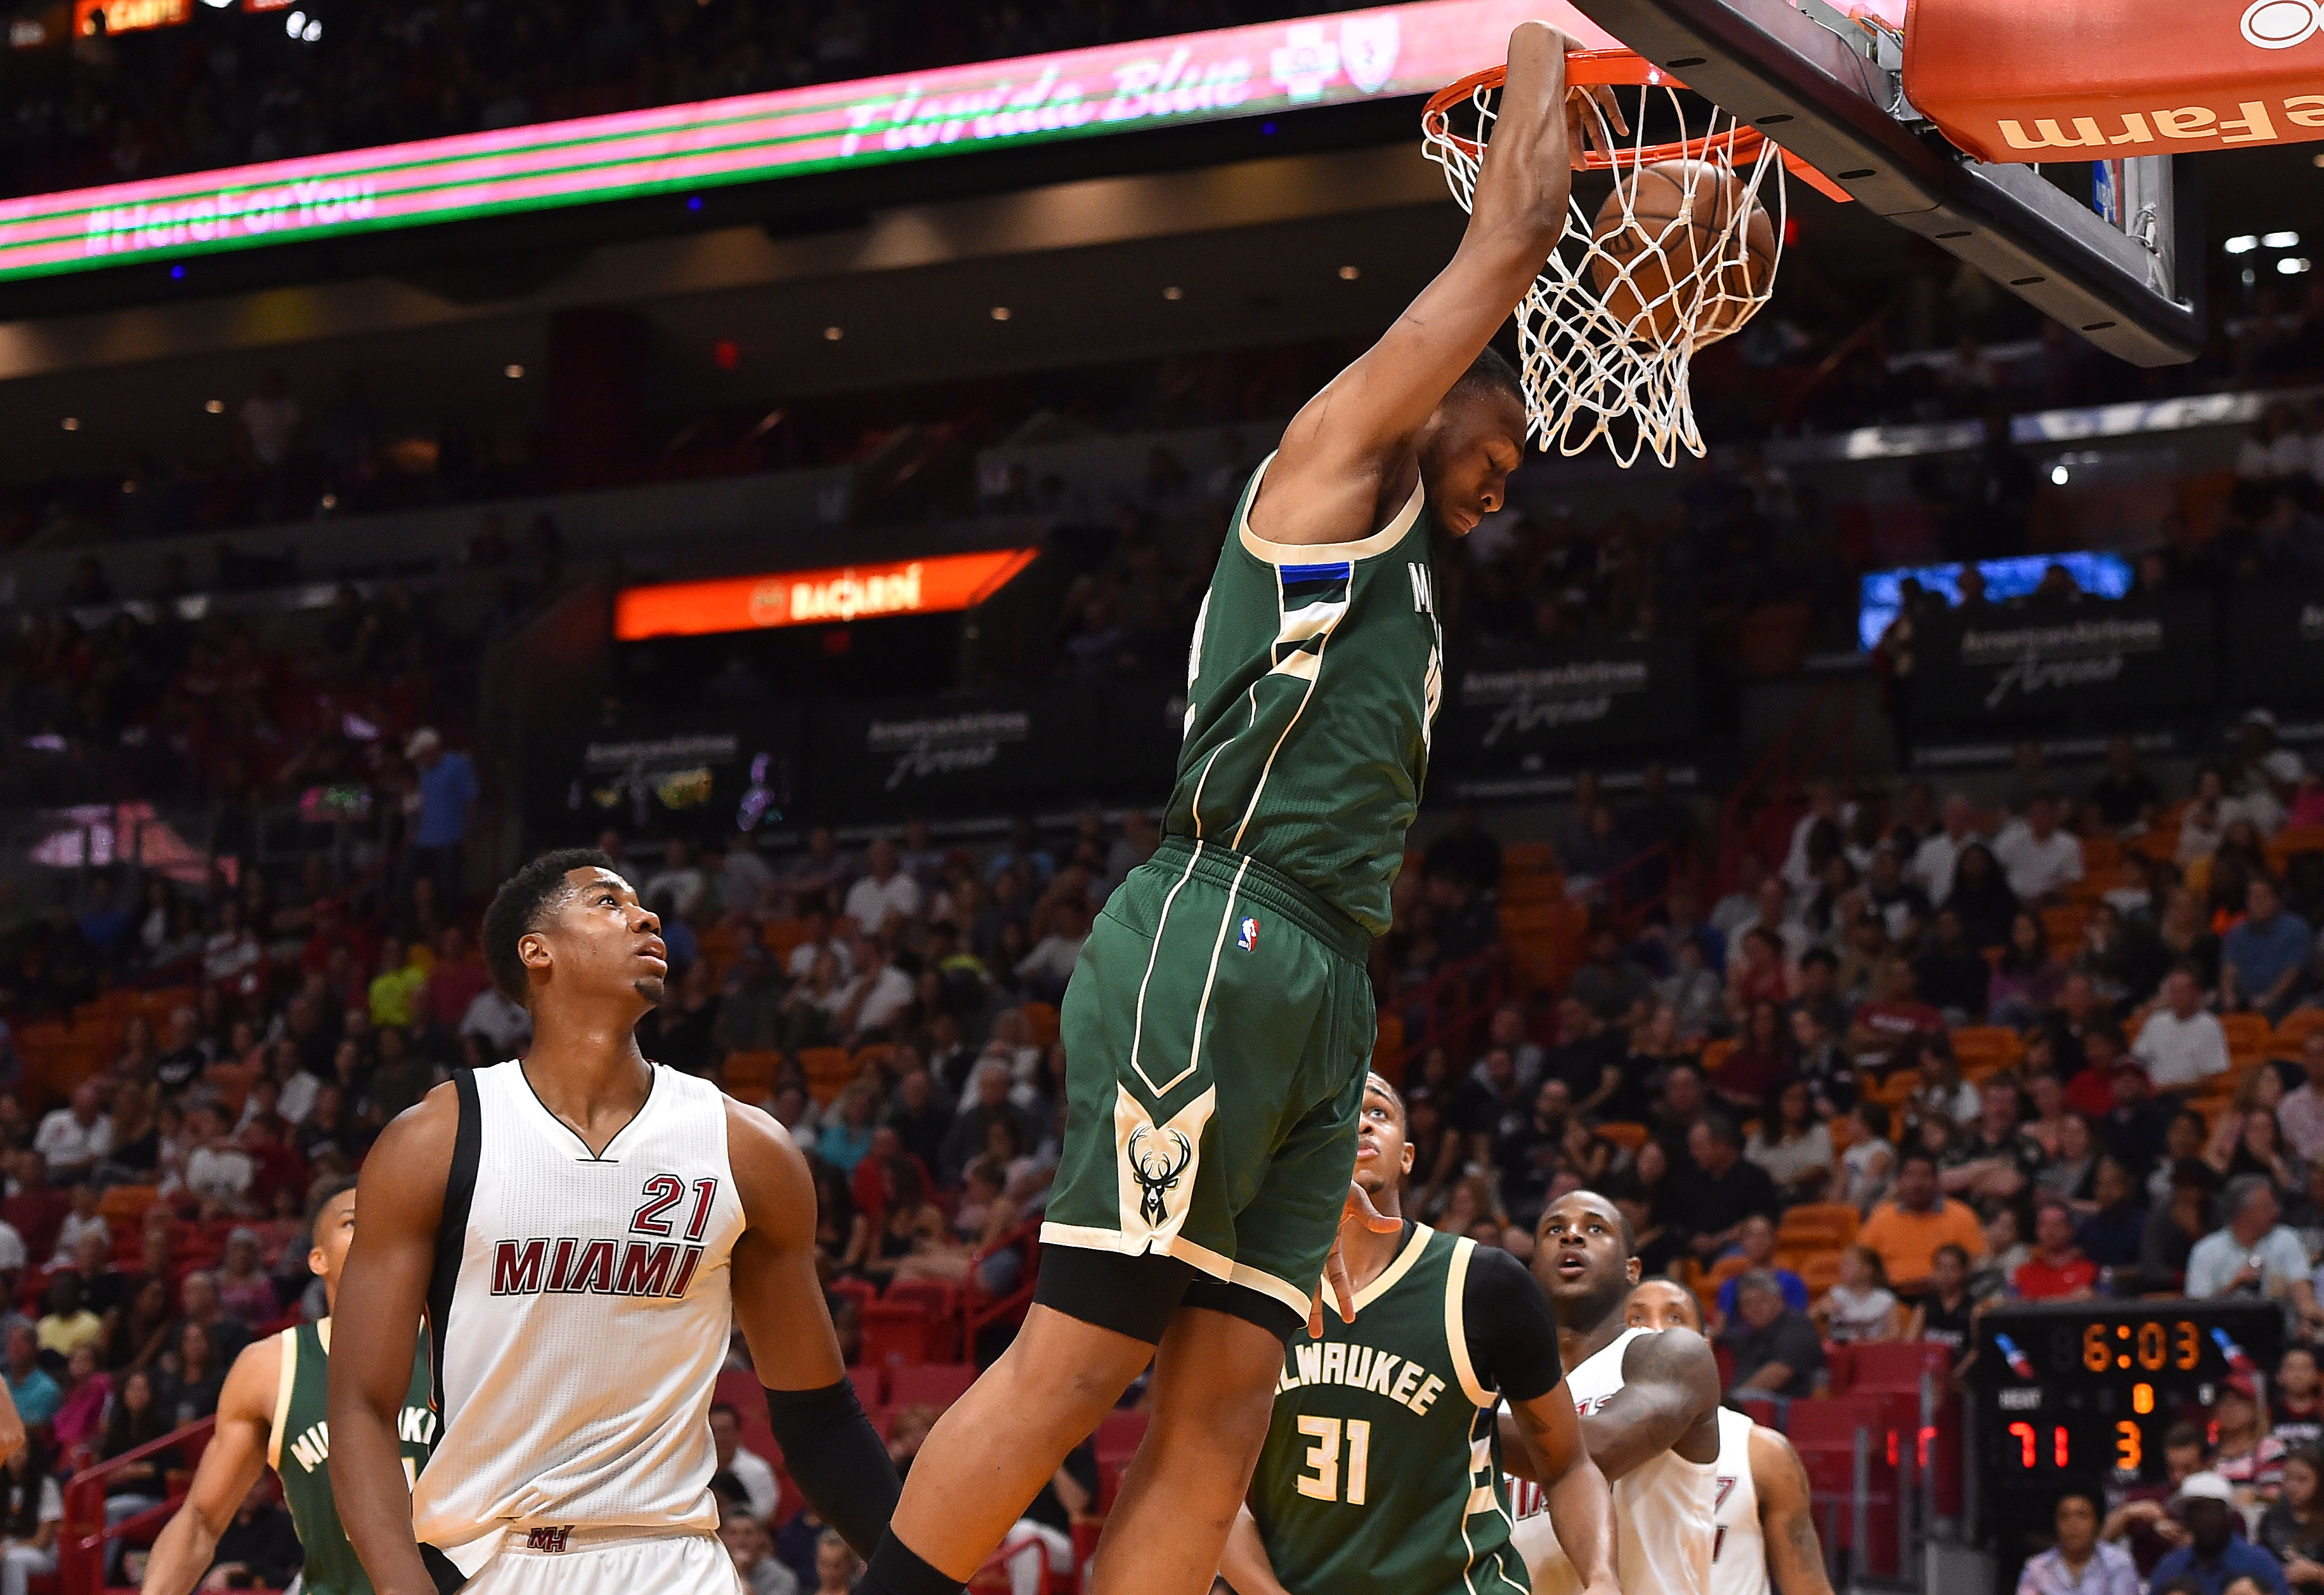 Jan 21, 2017; Miami, FL, USA; Milwaukee Bucks forward Jabari Parker (12) dunks the ball against the Miami Heat during the second half at American Airlines Arena. The Miami Heat defeat the Milwaukee Bucks 109-97. Mandatory Credit: Jasen Vinlove-USA TODAY Sports